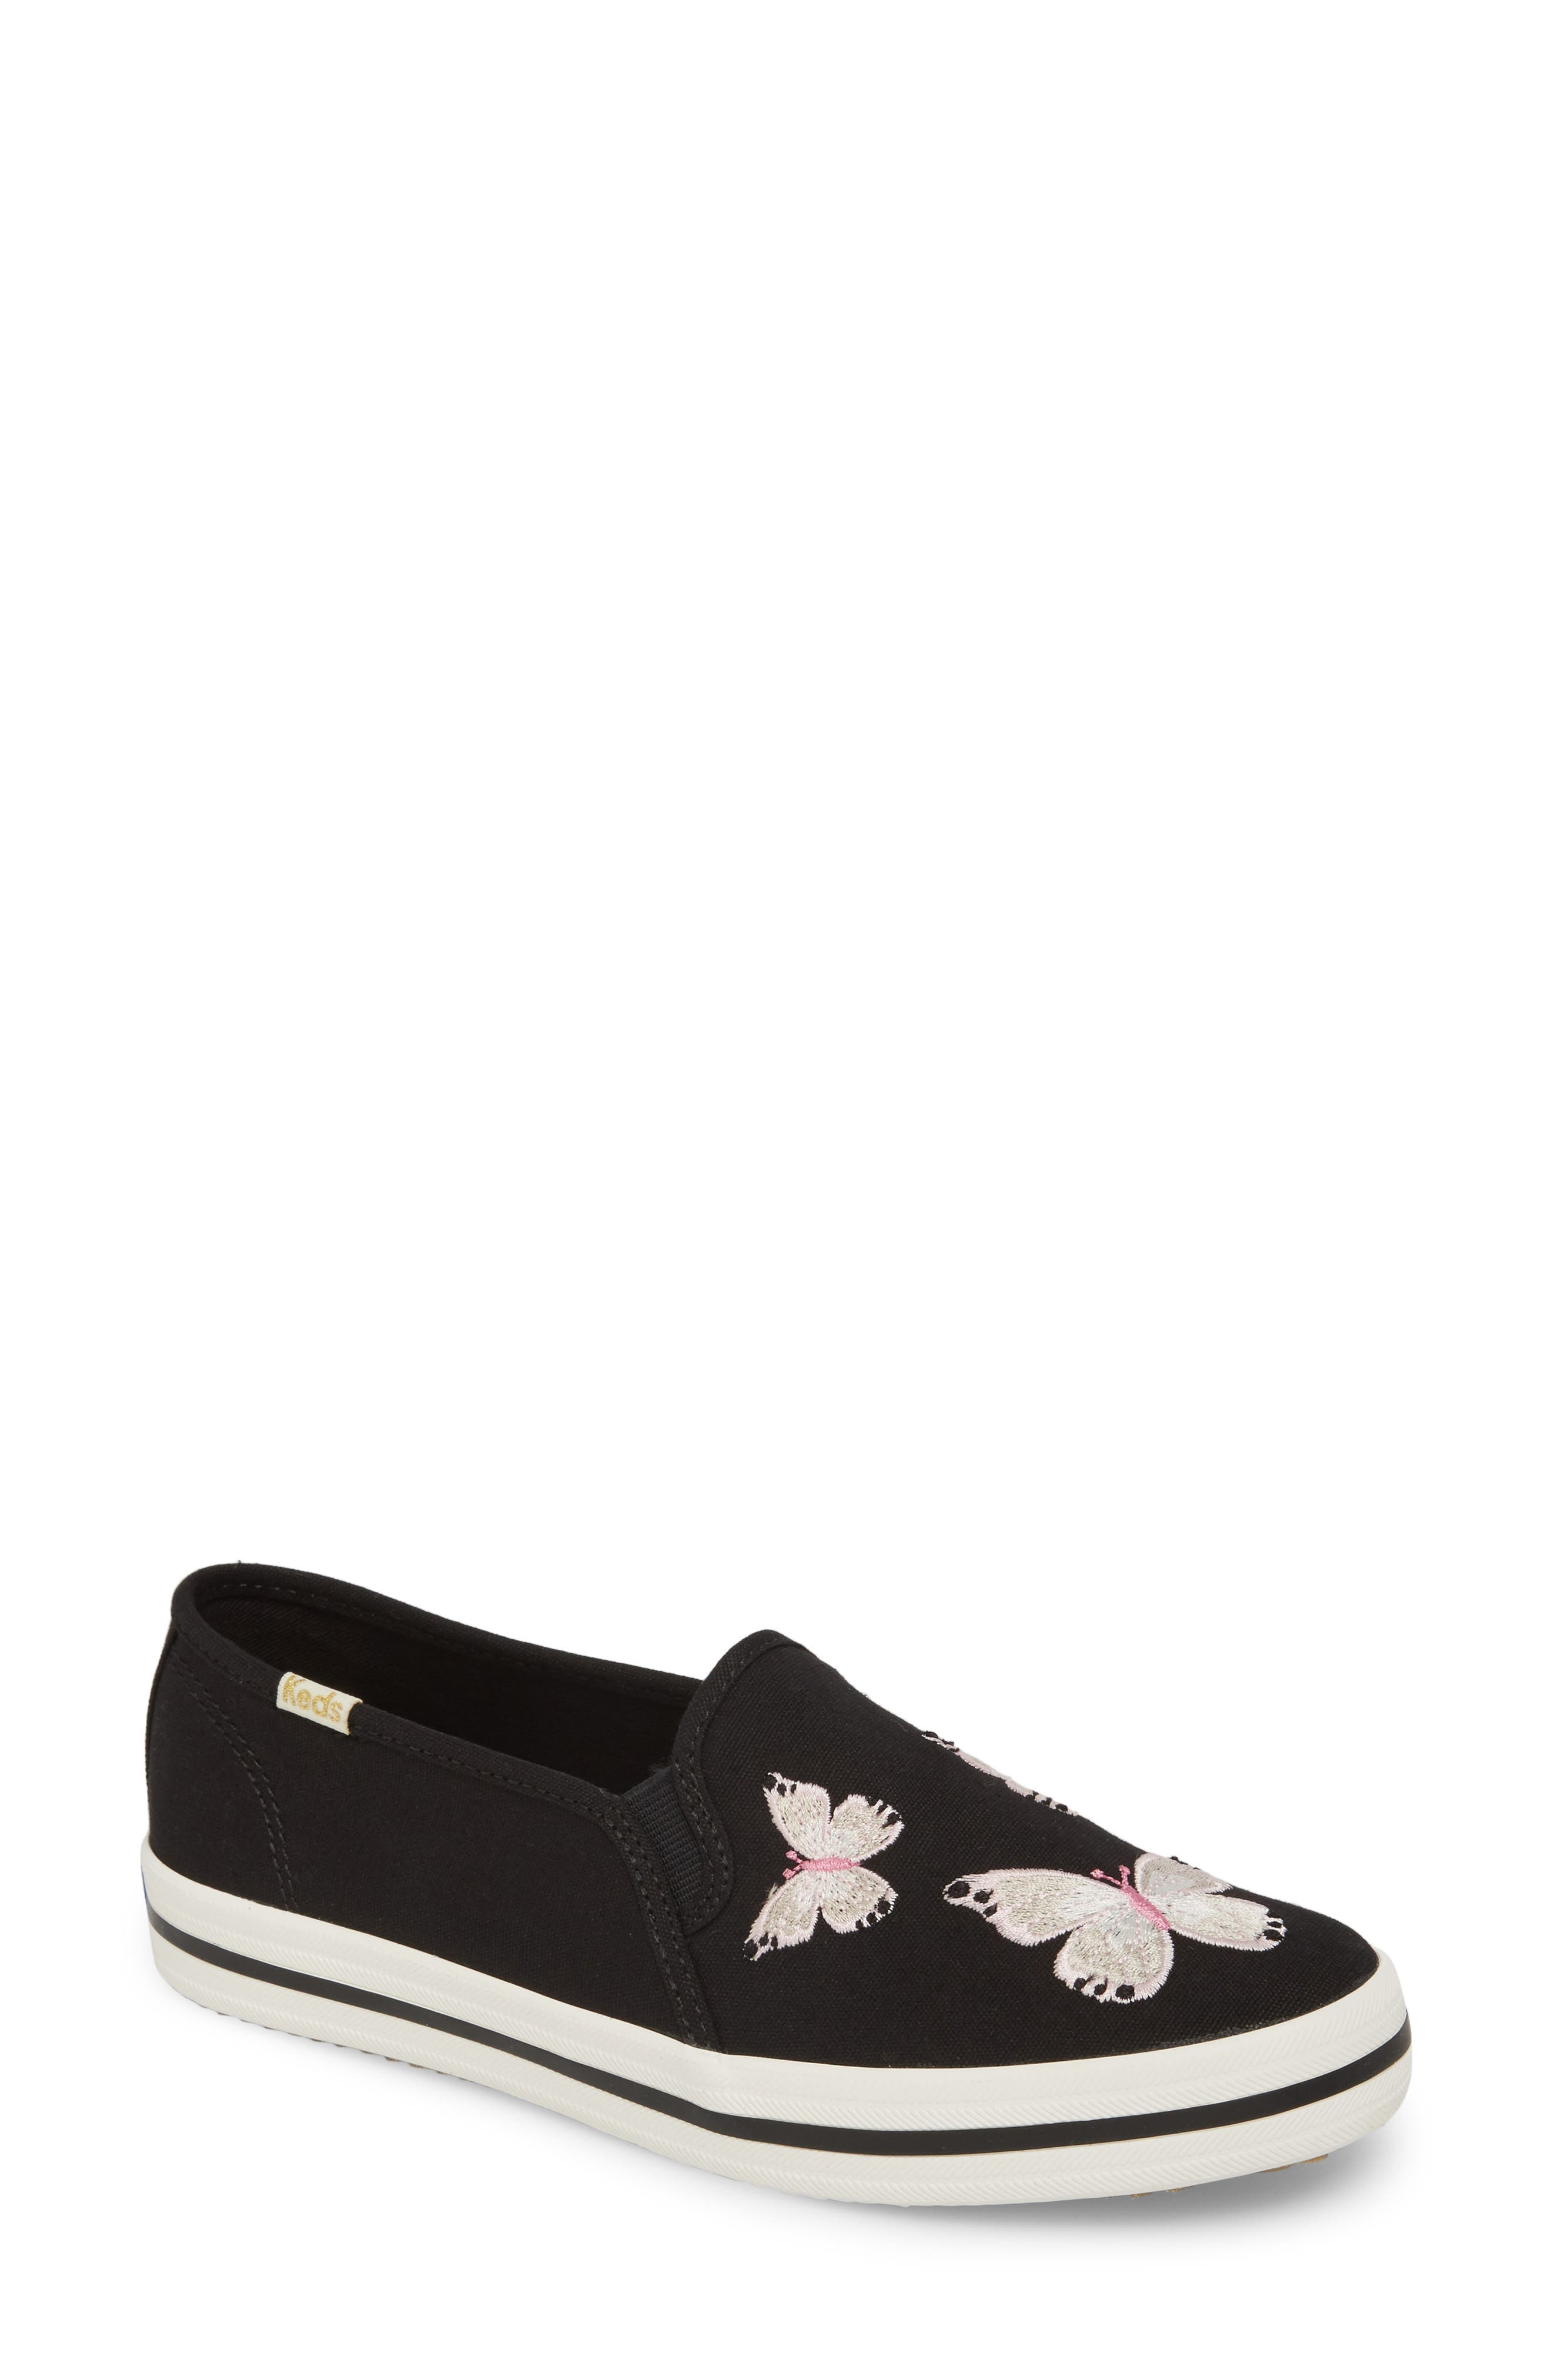 butterfly double decker slip-on sneaker,                         Main,                         color, Black